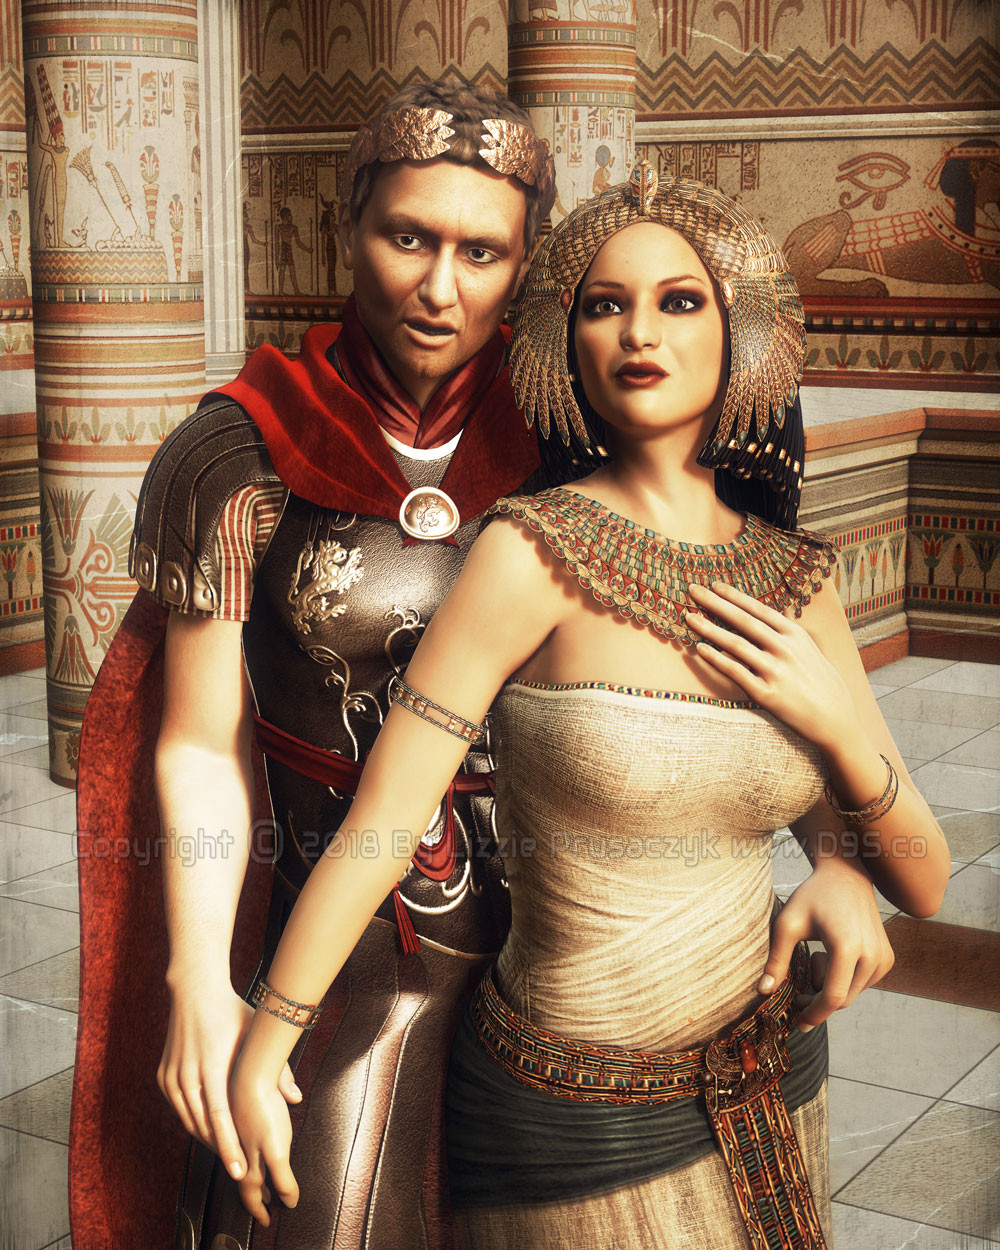 Cleopatra looks ahead to a wondrous future as Caesar promises her the world. They both lust for more power.